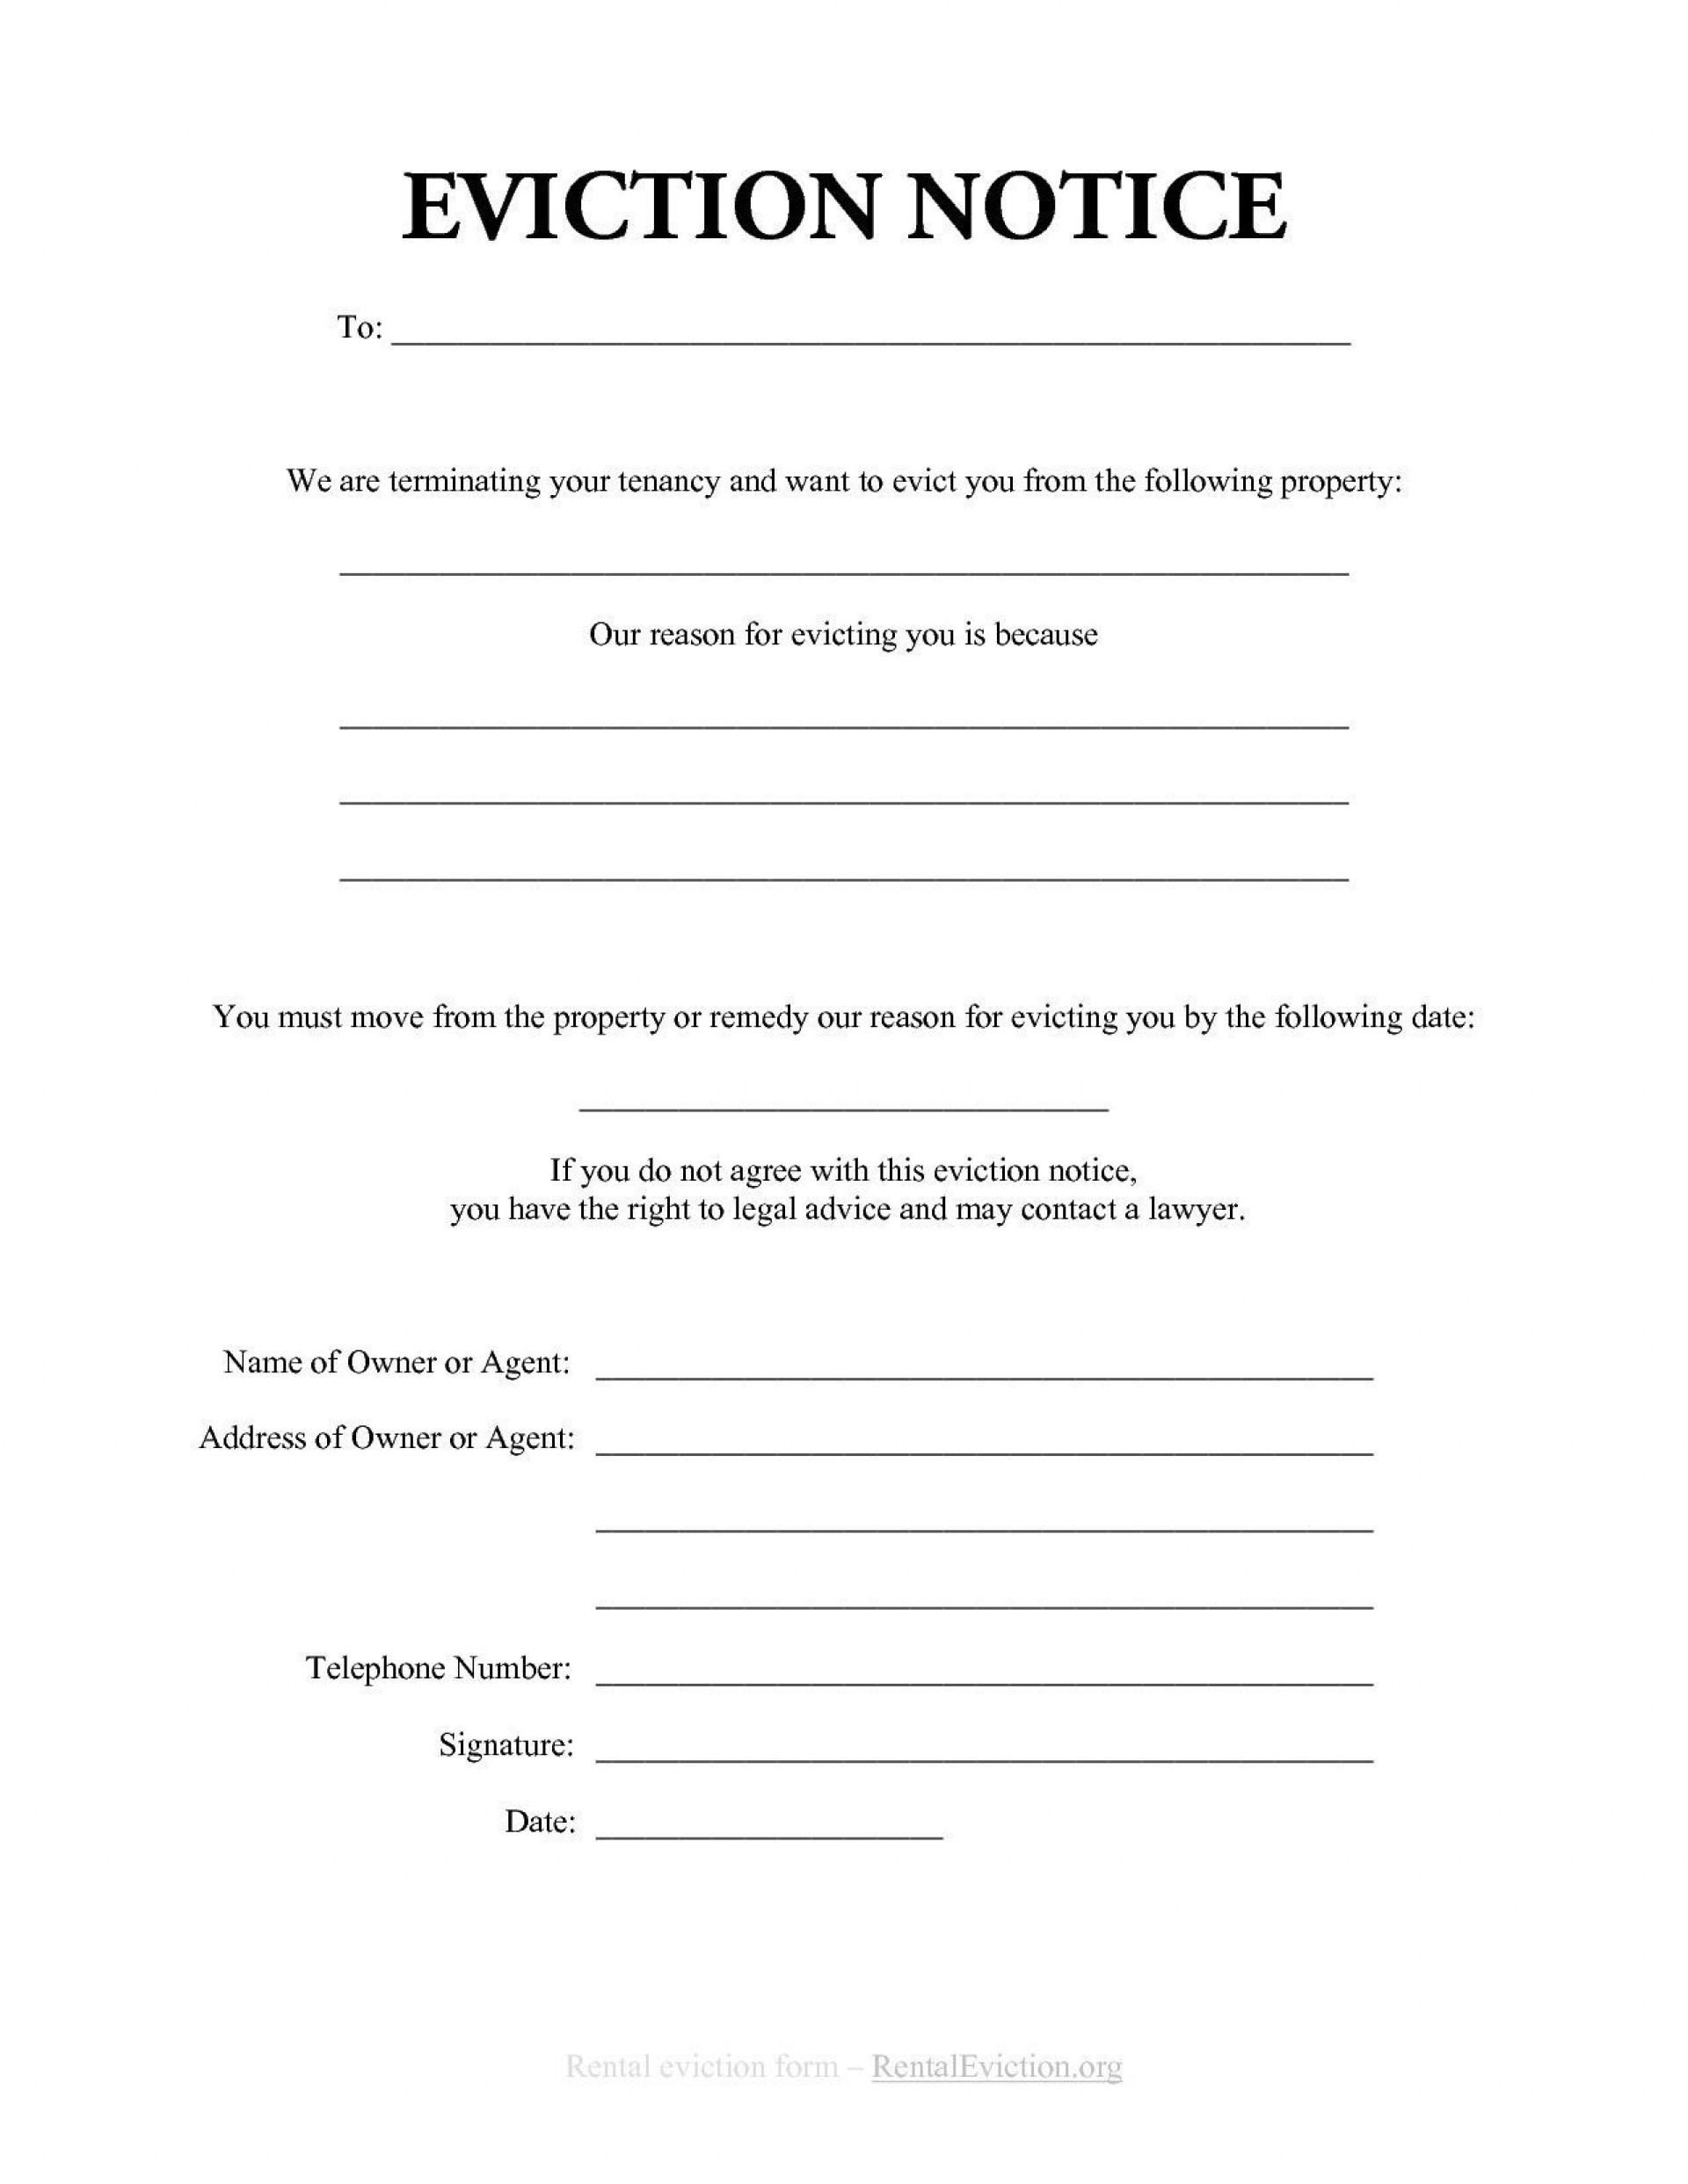 007 Wondrou 30 Day Eviction Notice Template Picture  Pdf Form1920